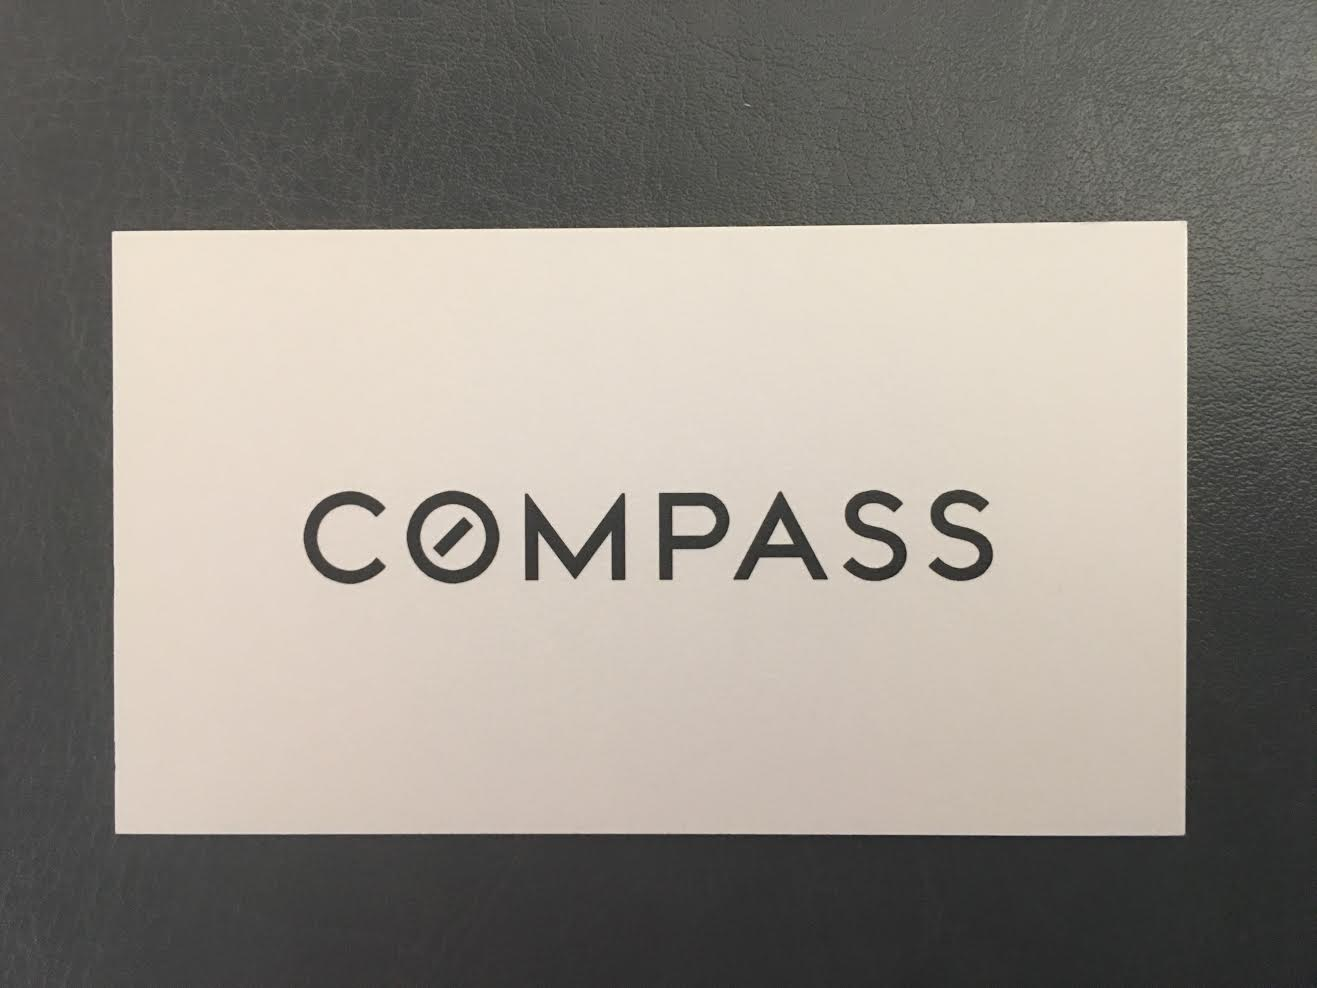 28 real estate business cards we love compass real estate business cards magicingreecefo Image collections